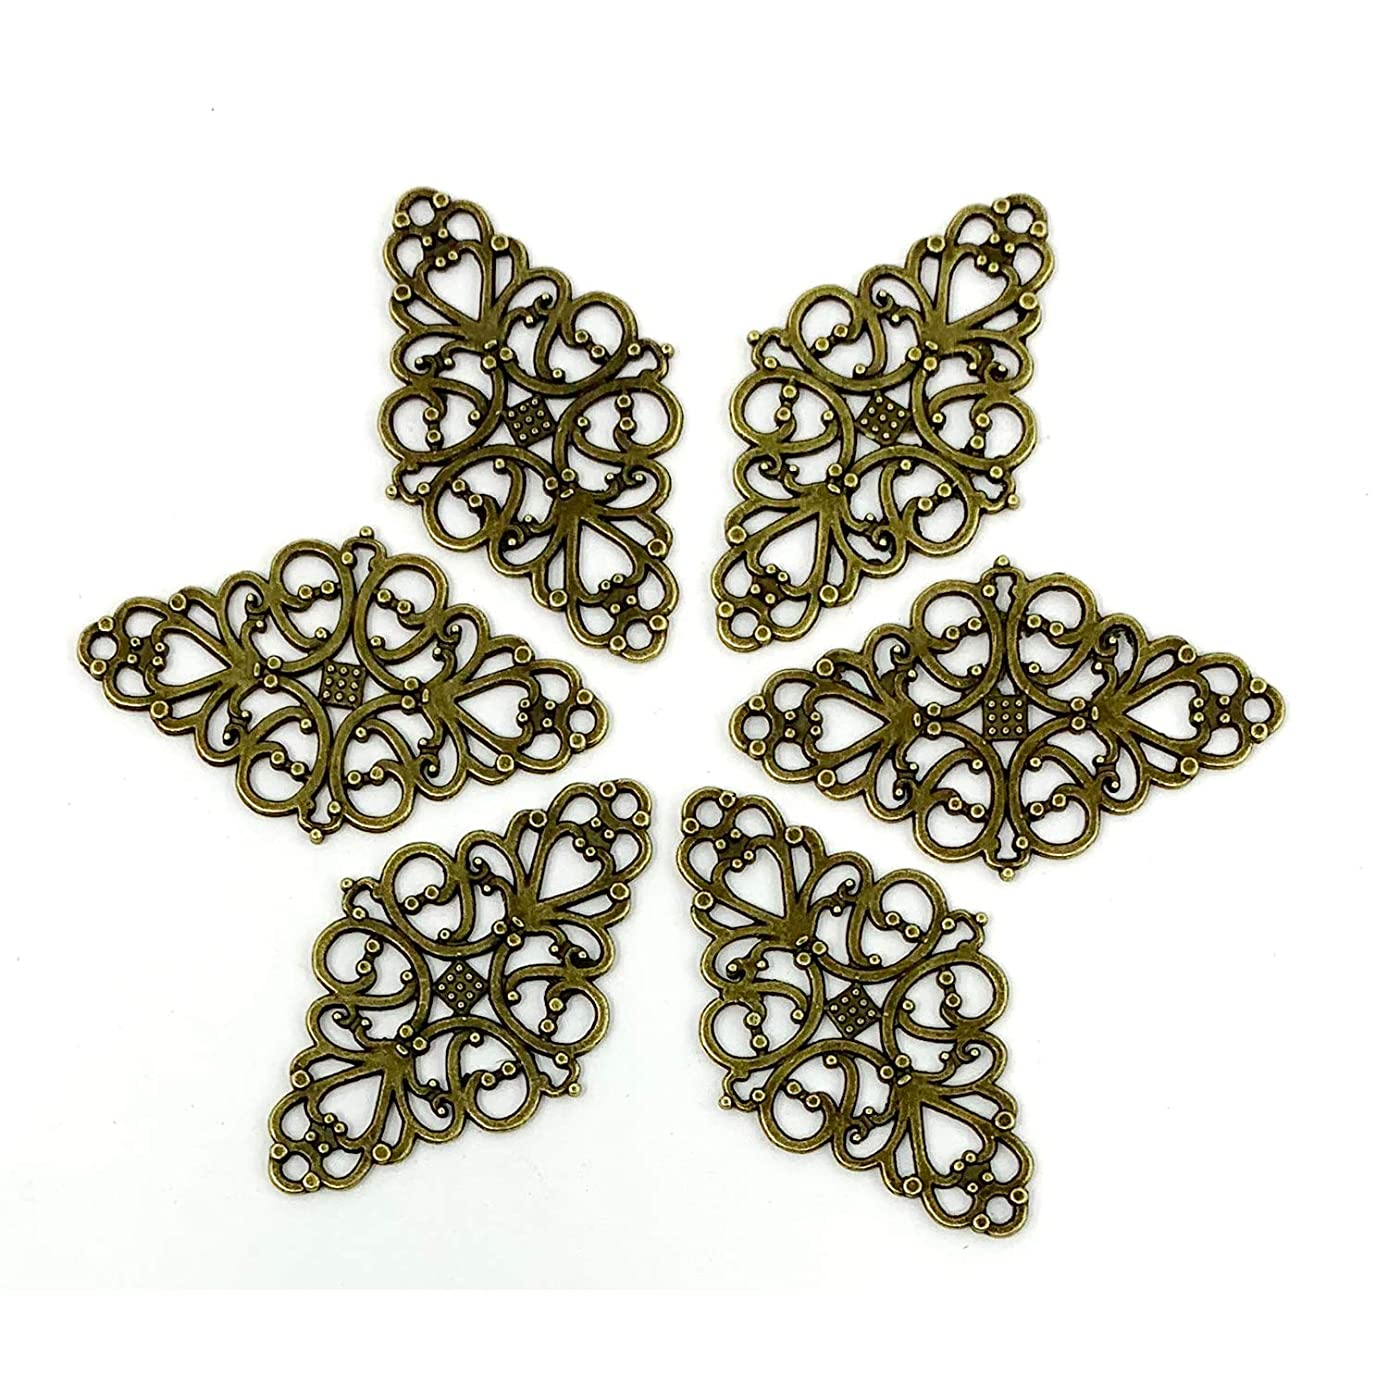 Filigree Flower Plate Charms, JIALEEY 40pcs Hollowed-Out Rhombic Pendant Connector for DIY Jewelry Making Wrapping Accessories(Bronze Tone)